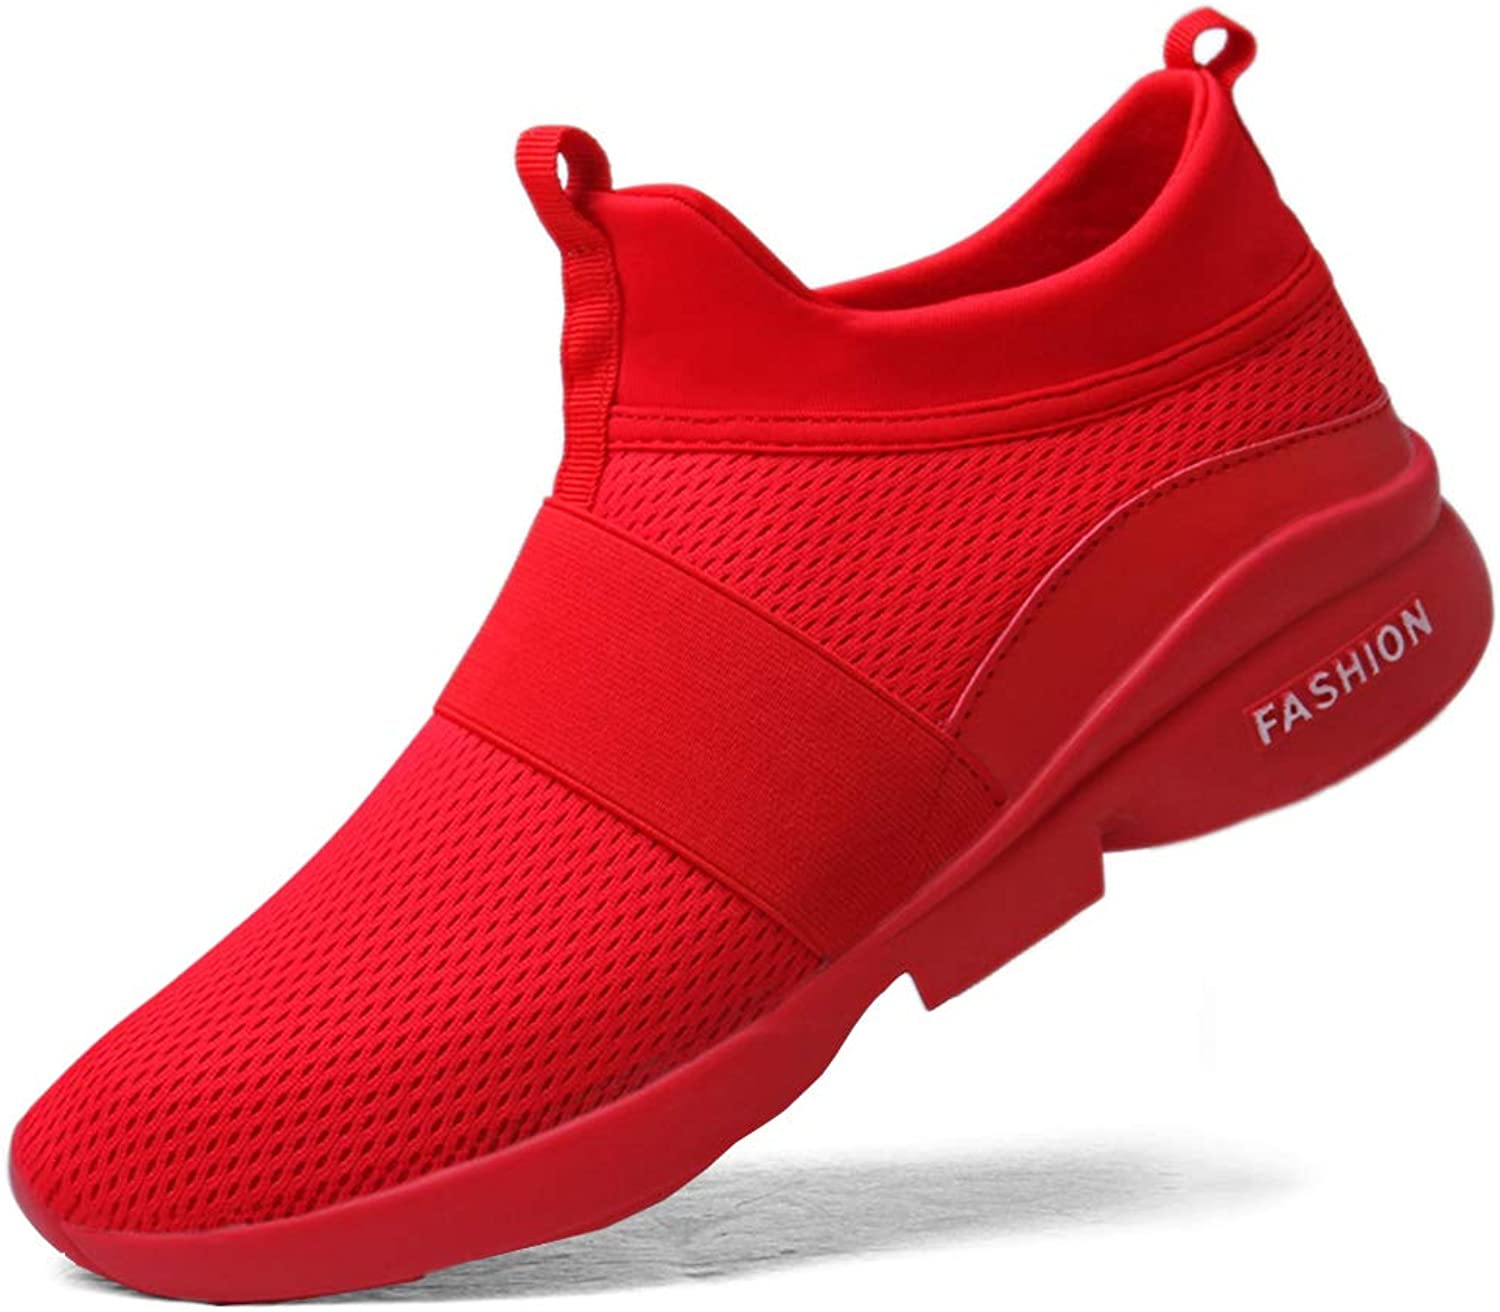 Andyy Men's Running Slip-on shoes Fashion Sneakers Athletic Breathable Lightweight Sports Casual Red Black